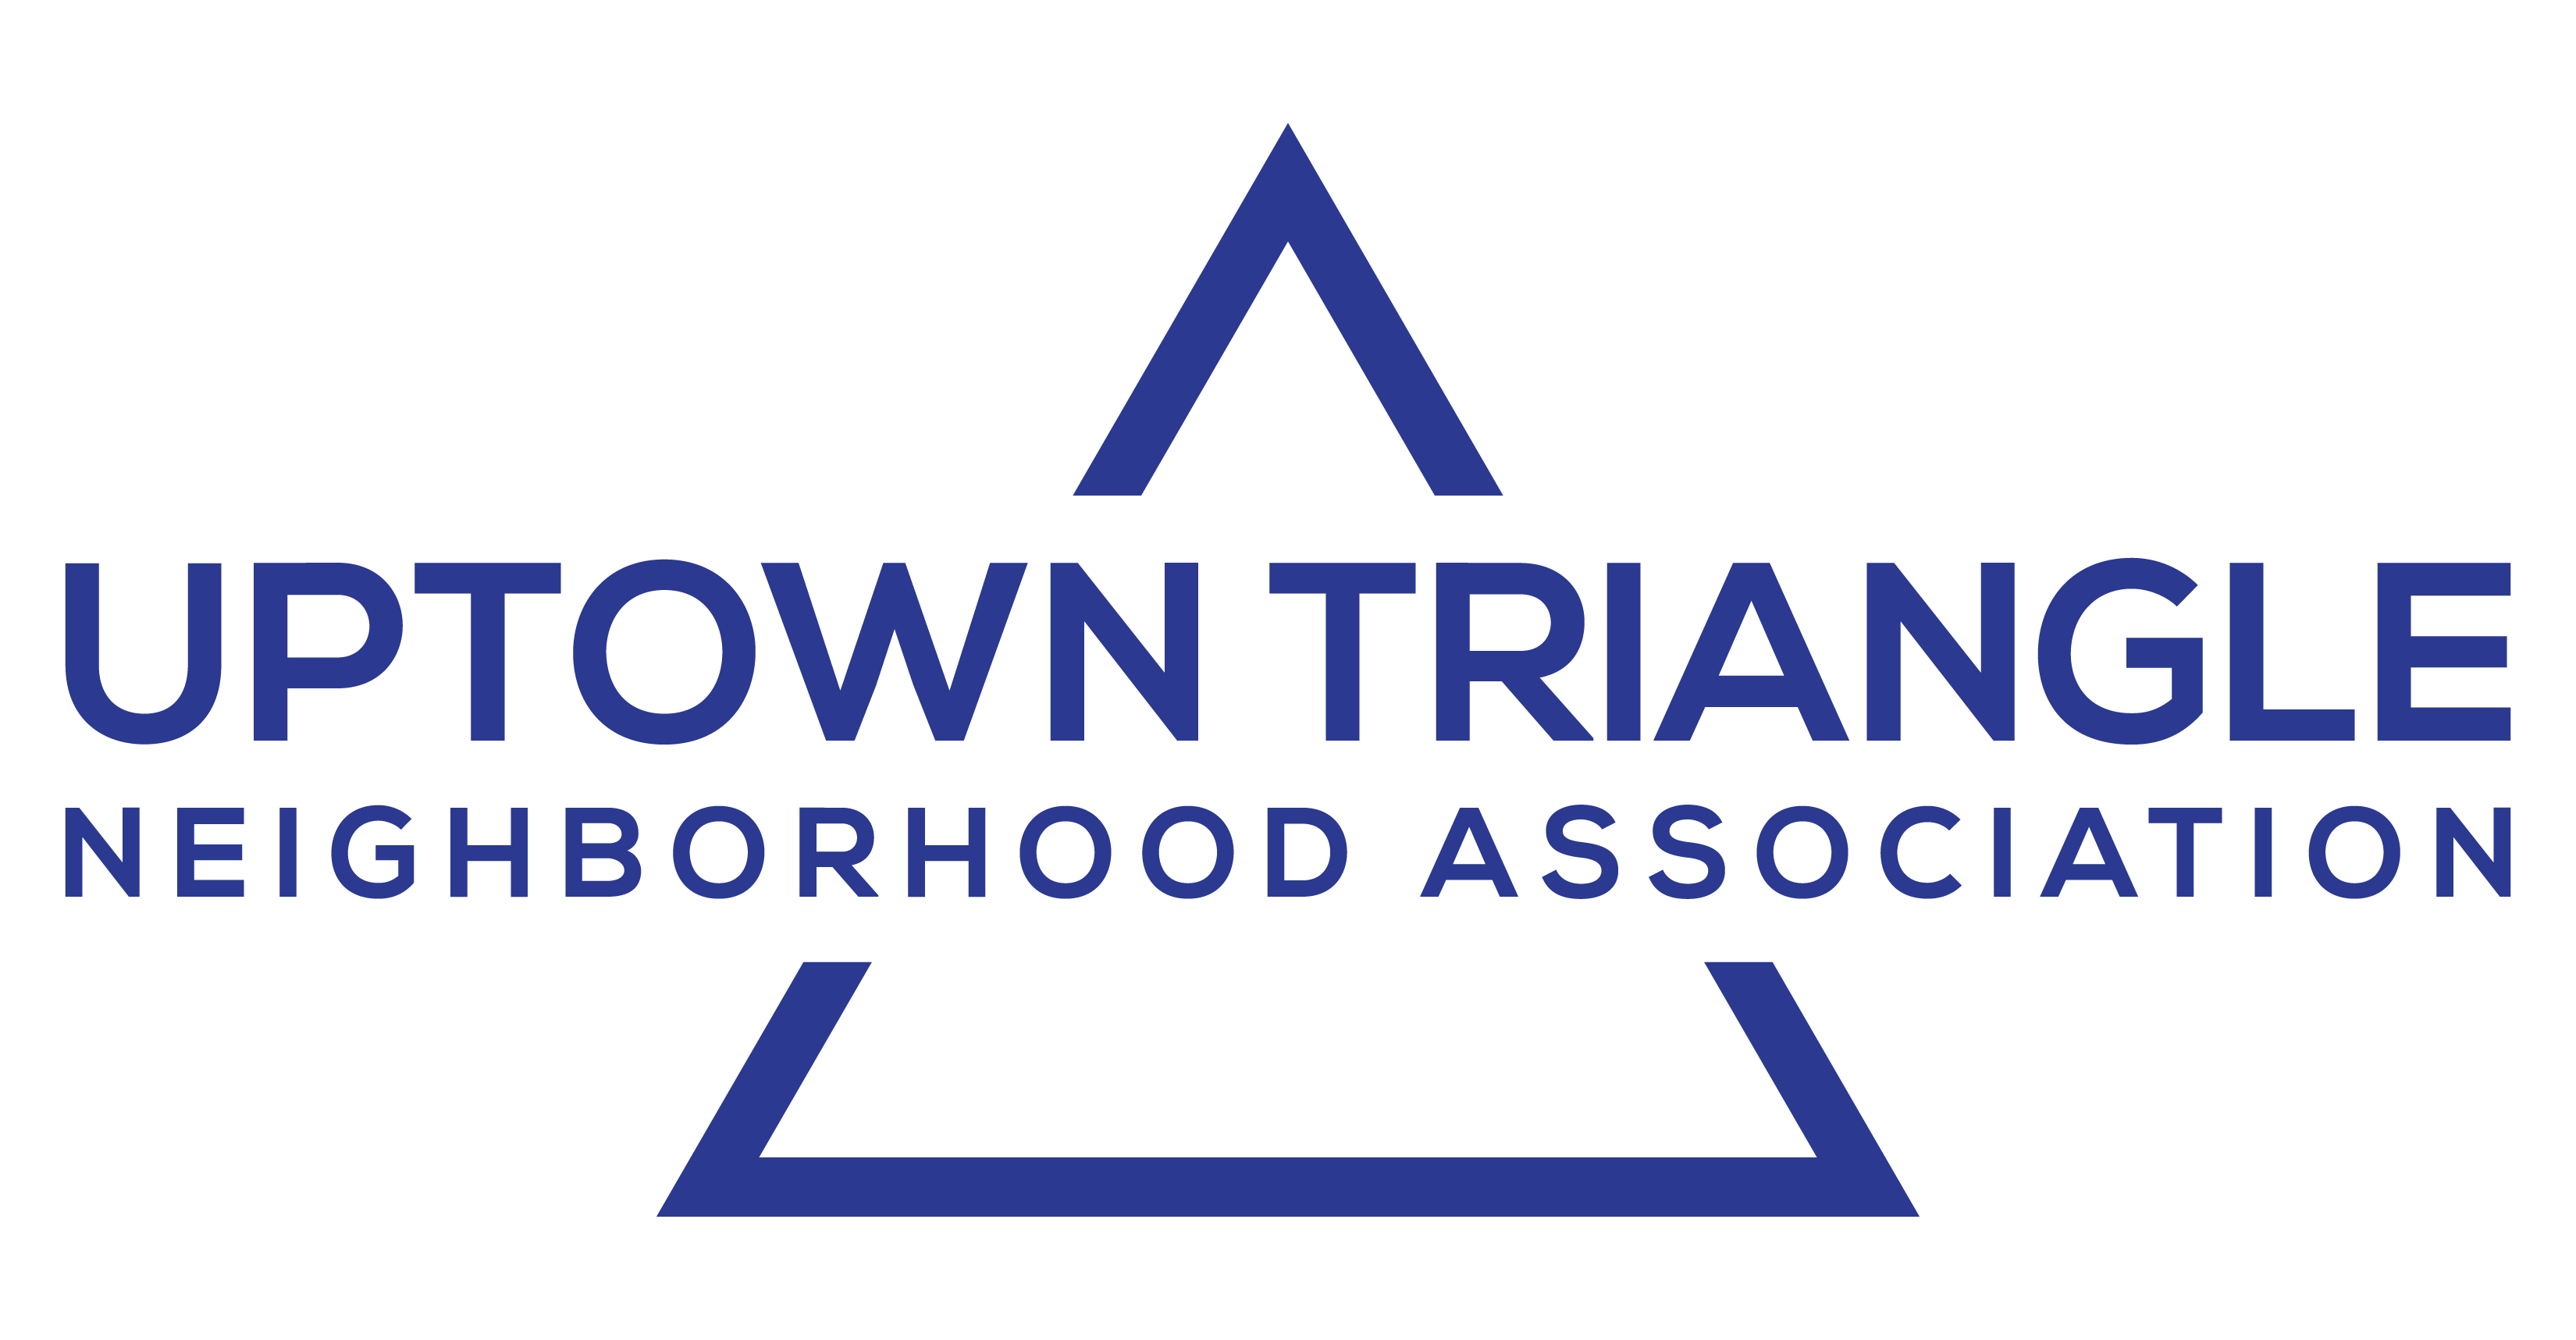 Uptown Triangle Neighborhood Association